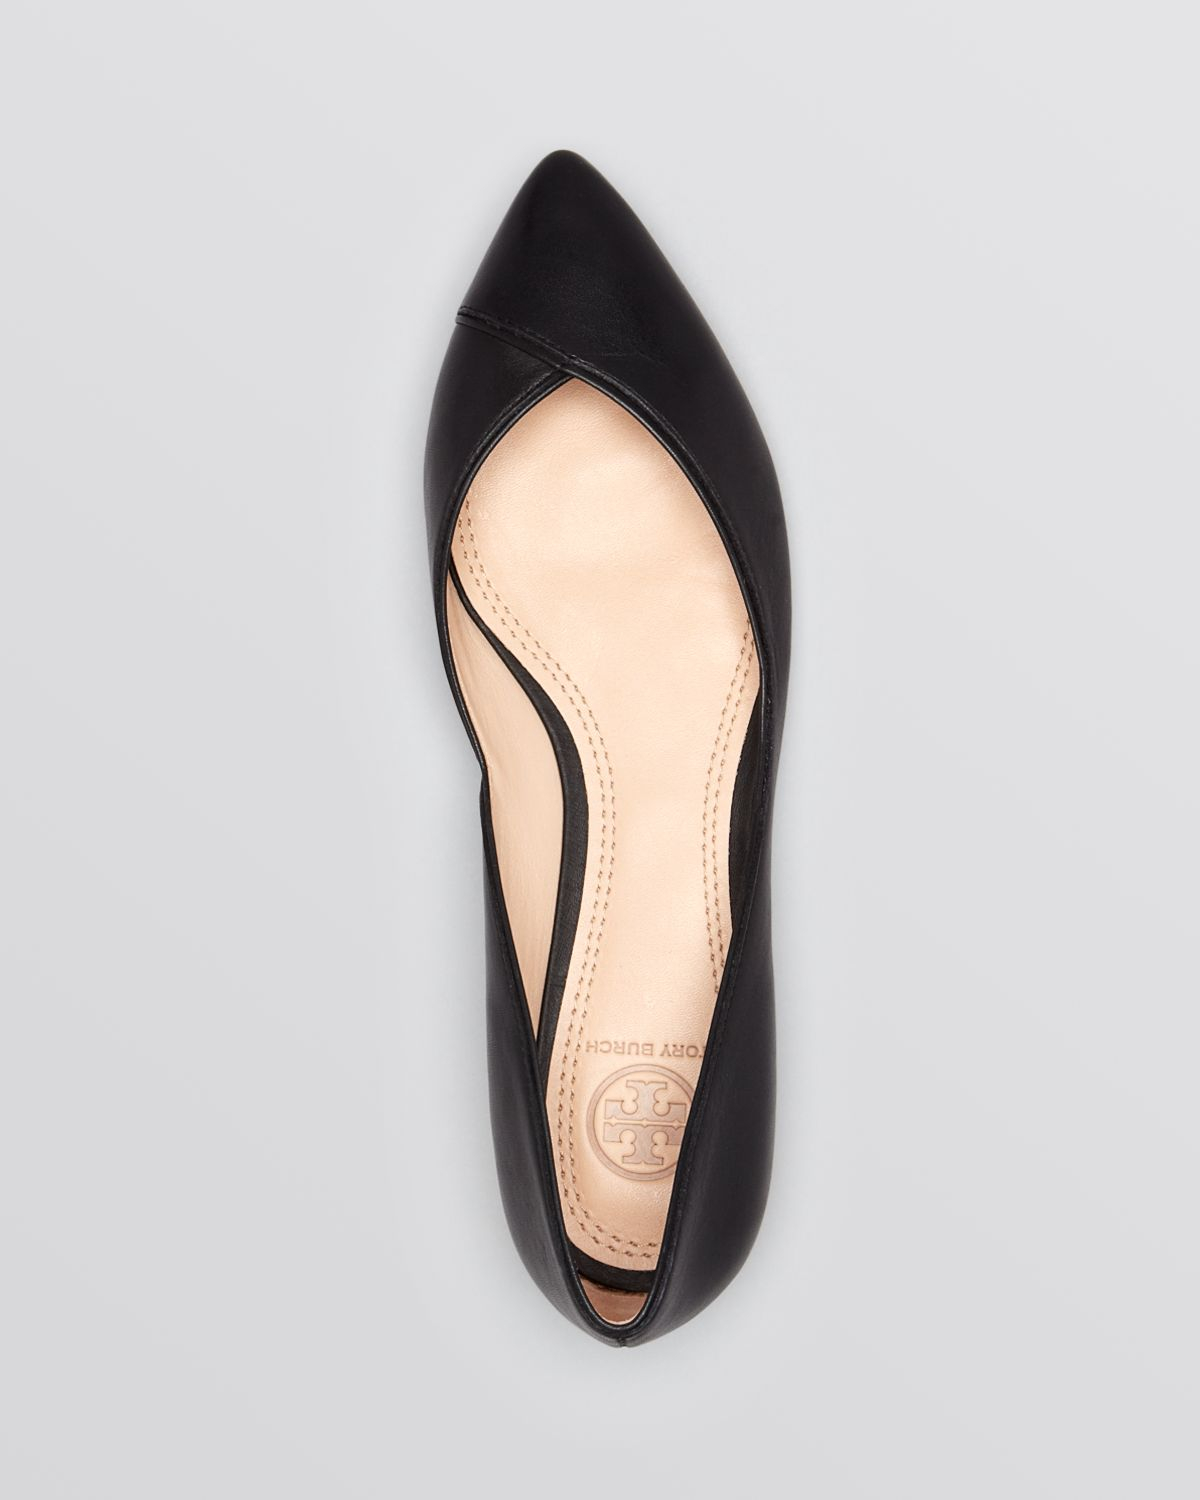 Tory Burch Suede Round-Toe Flats Inexpensive sale online gDxOwPc